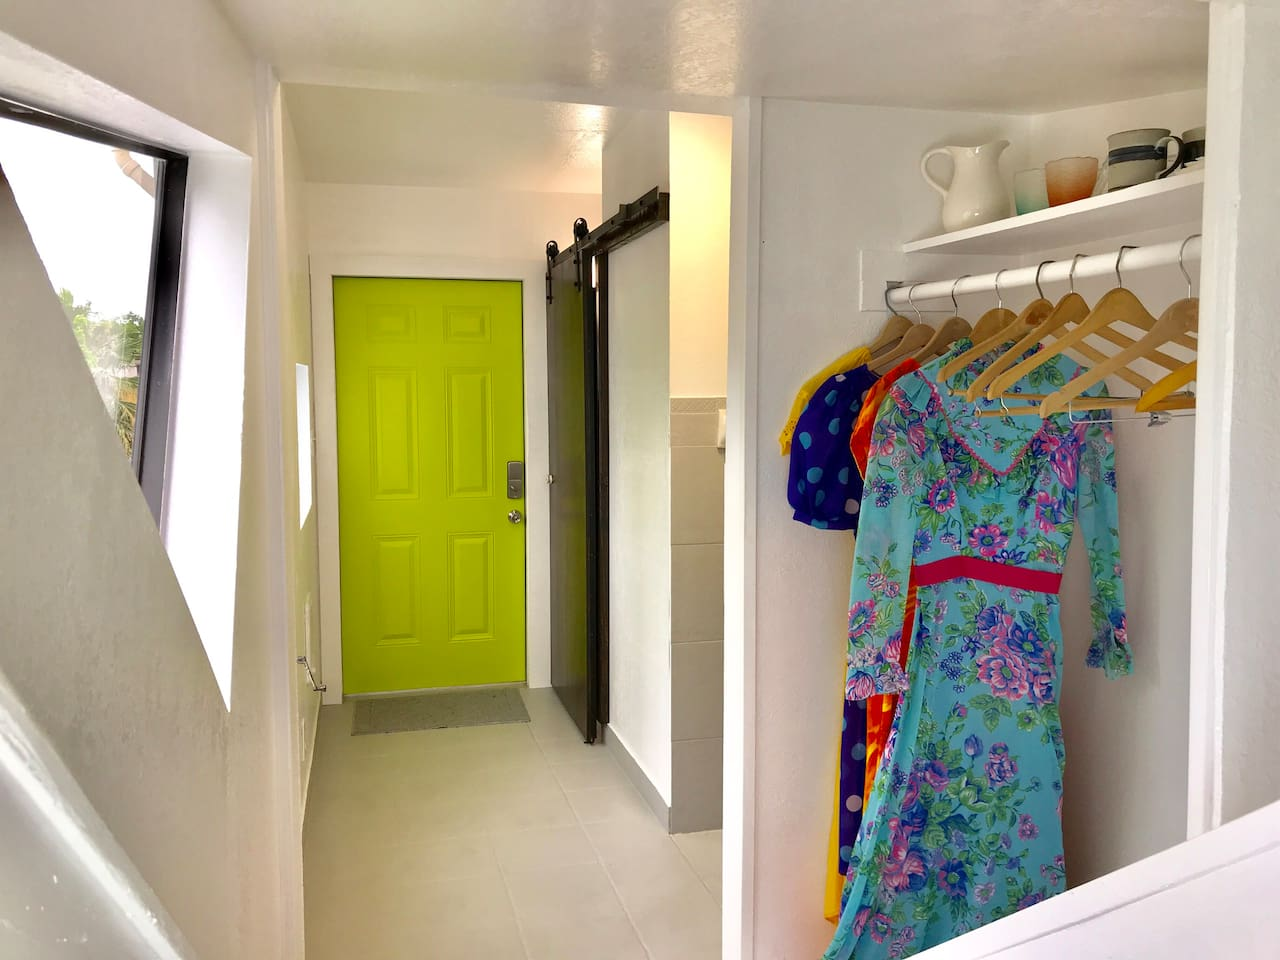 Open studio loft entryway, complete with wooden hangers for your Instagram worthy pics. Vintage coffee mugs, drink pitcher and glasses. Have fun shopping with In-house Wardrobe Stylists at San Antonio's premier vintage clothing store Montage.